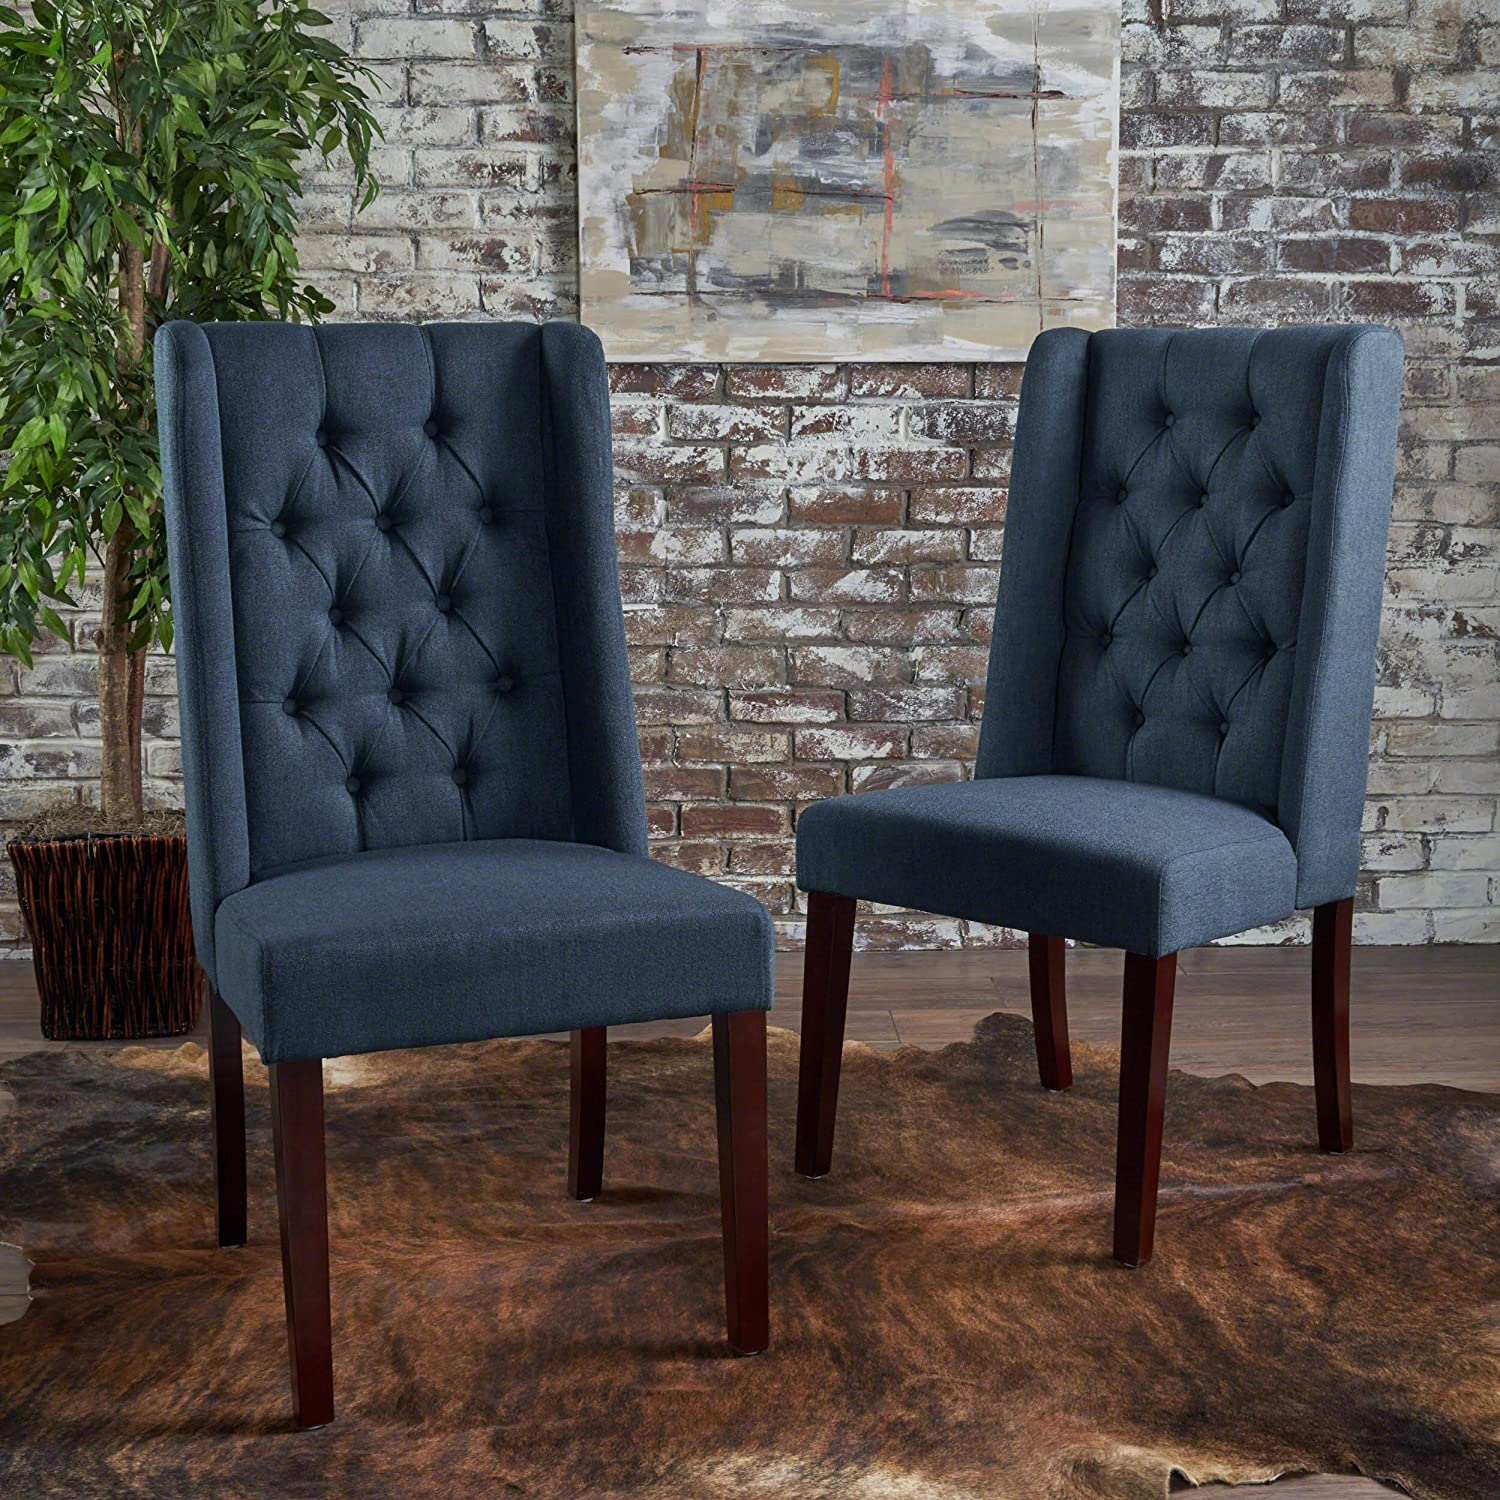 Billings Tufted Navy Blue Fabric Dining Chairs (Set of 2)